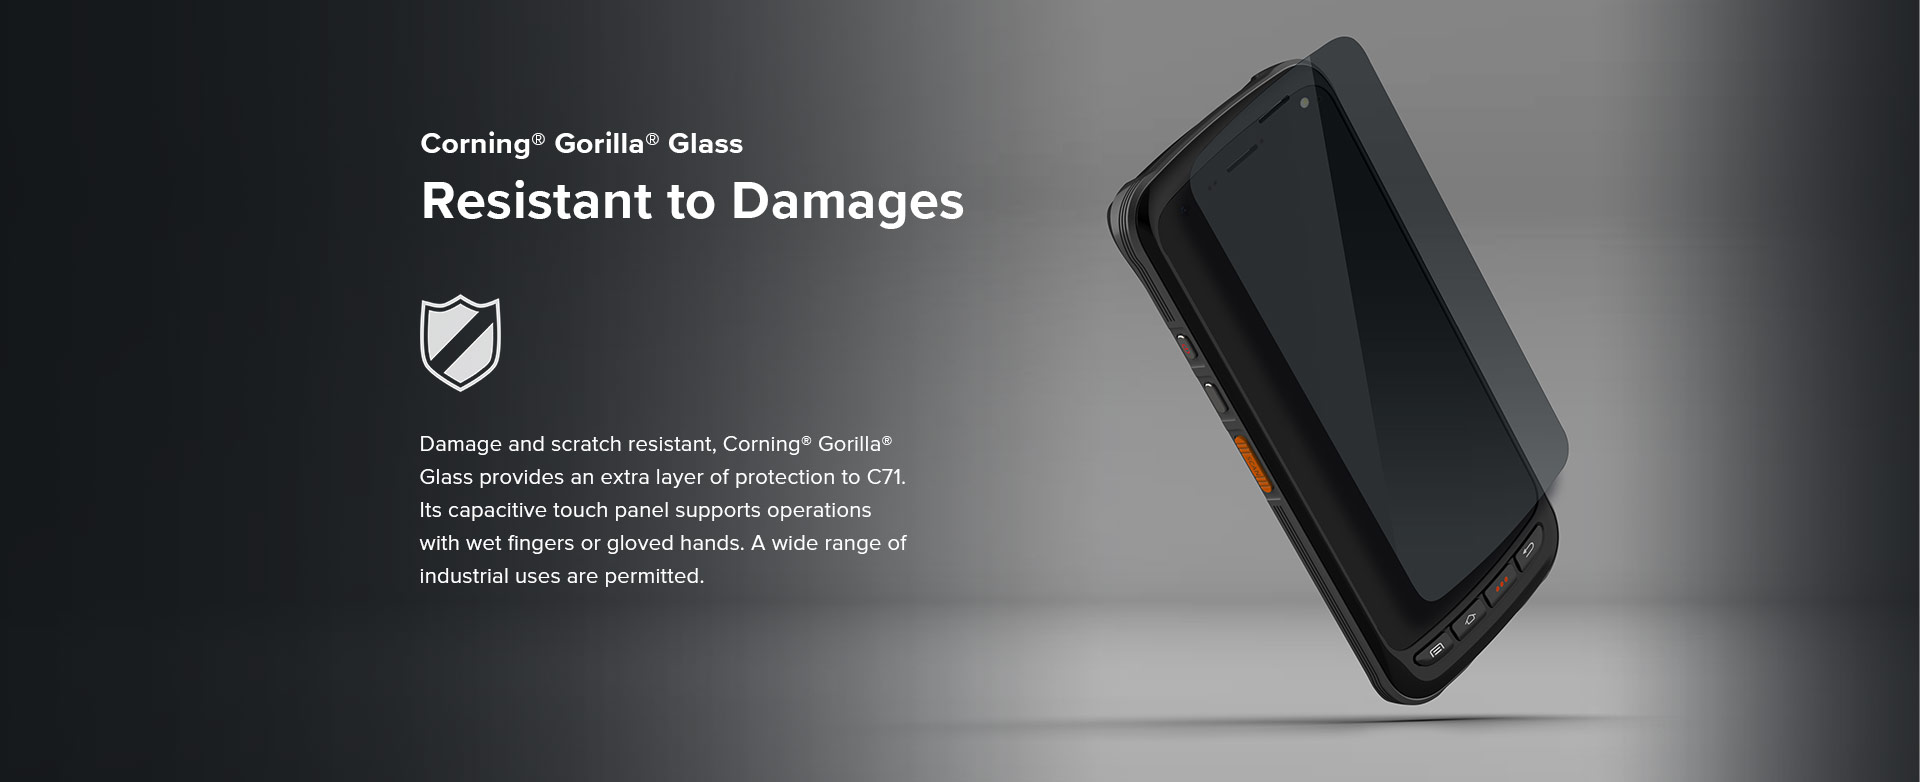 C71 - Android Industrial Mobile Computer - rugged